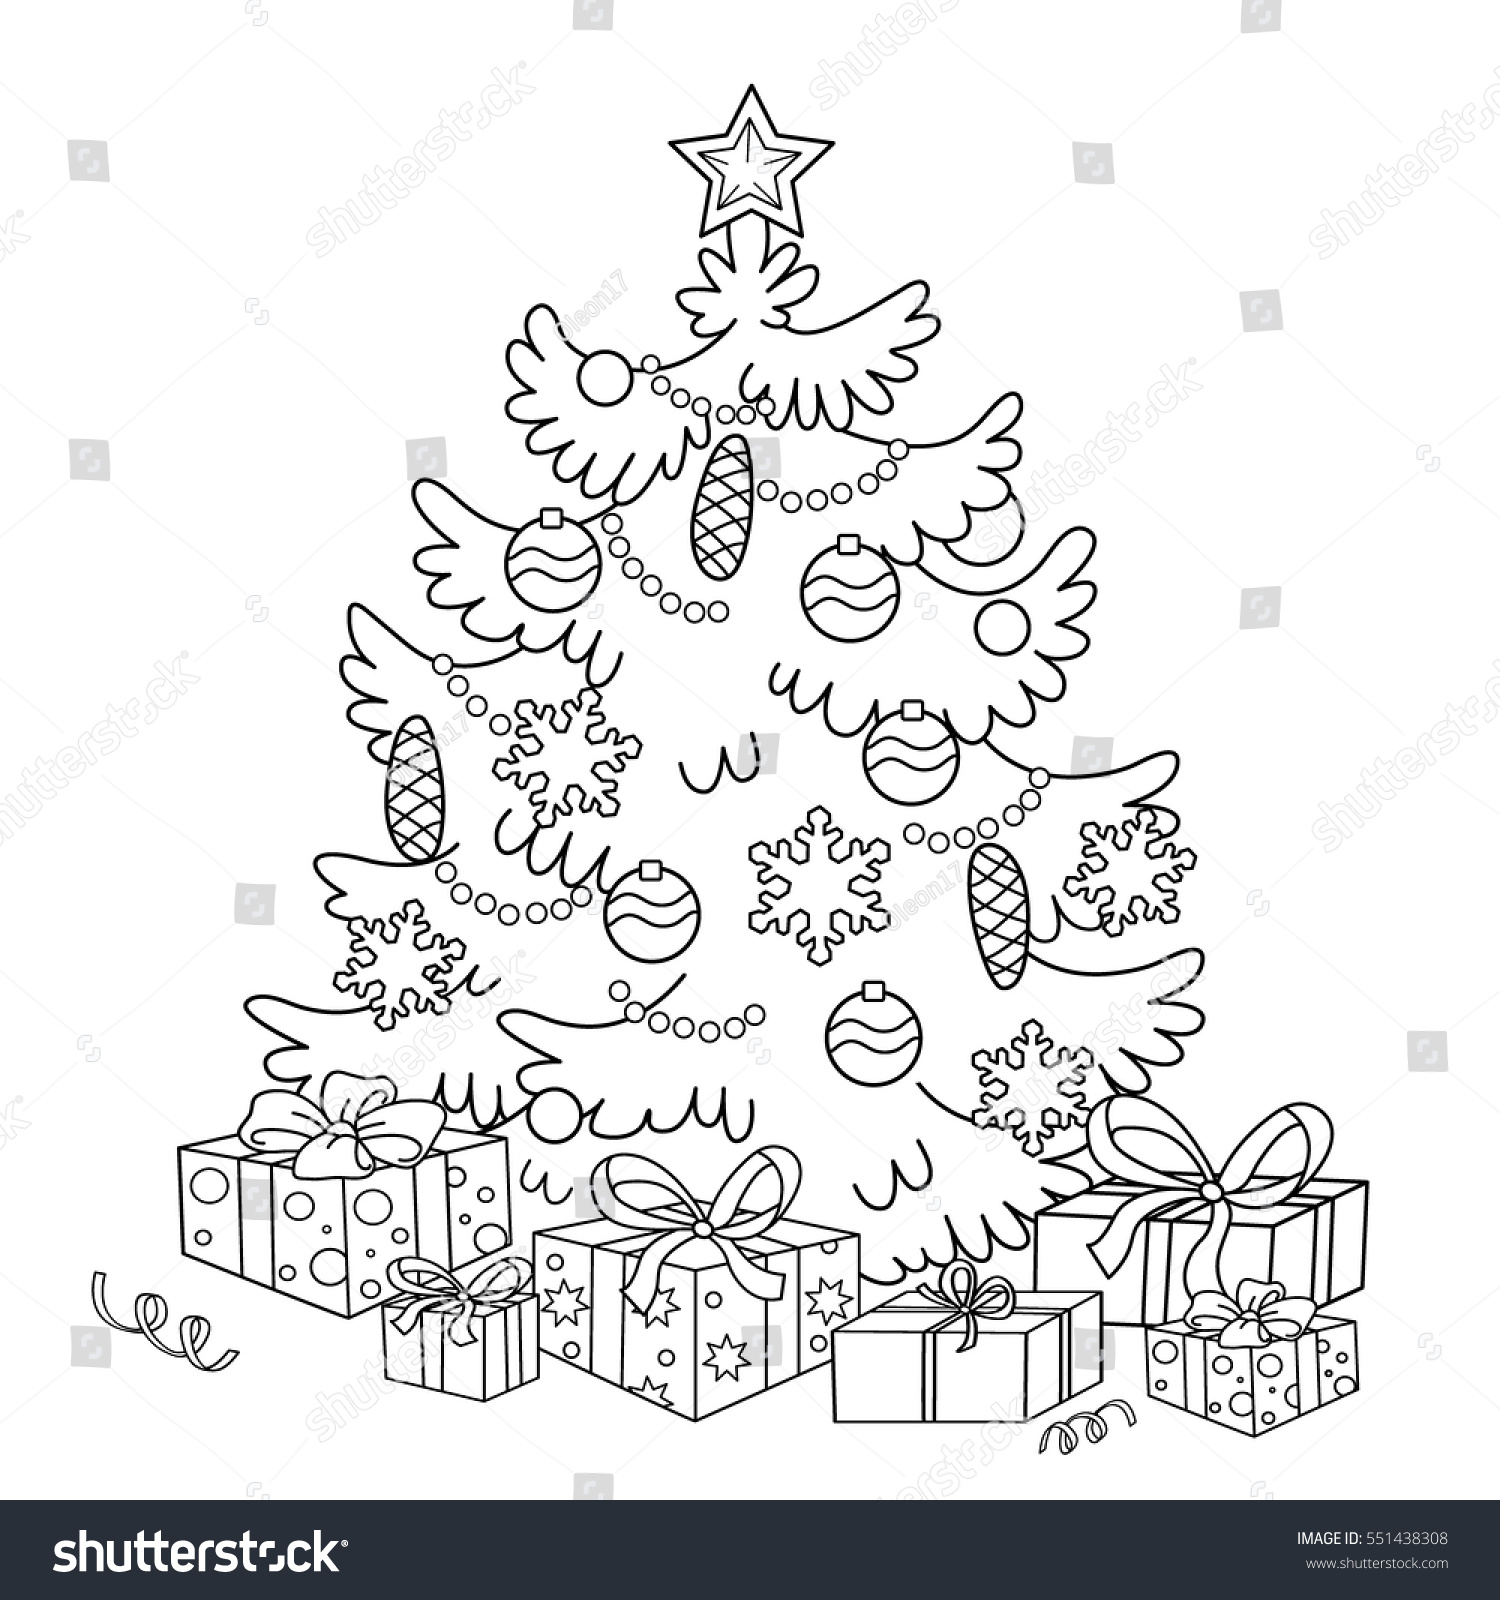 Coloring Page Outline Cartoon Christmas Tree Stock Vector Royalty